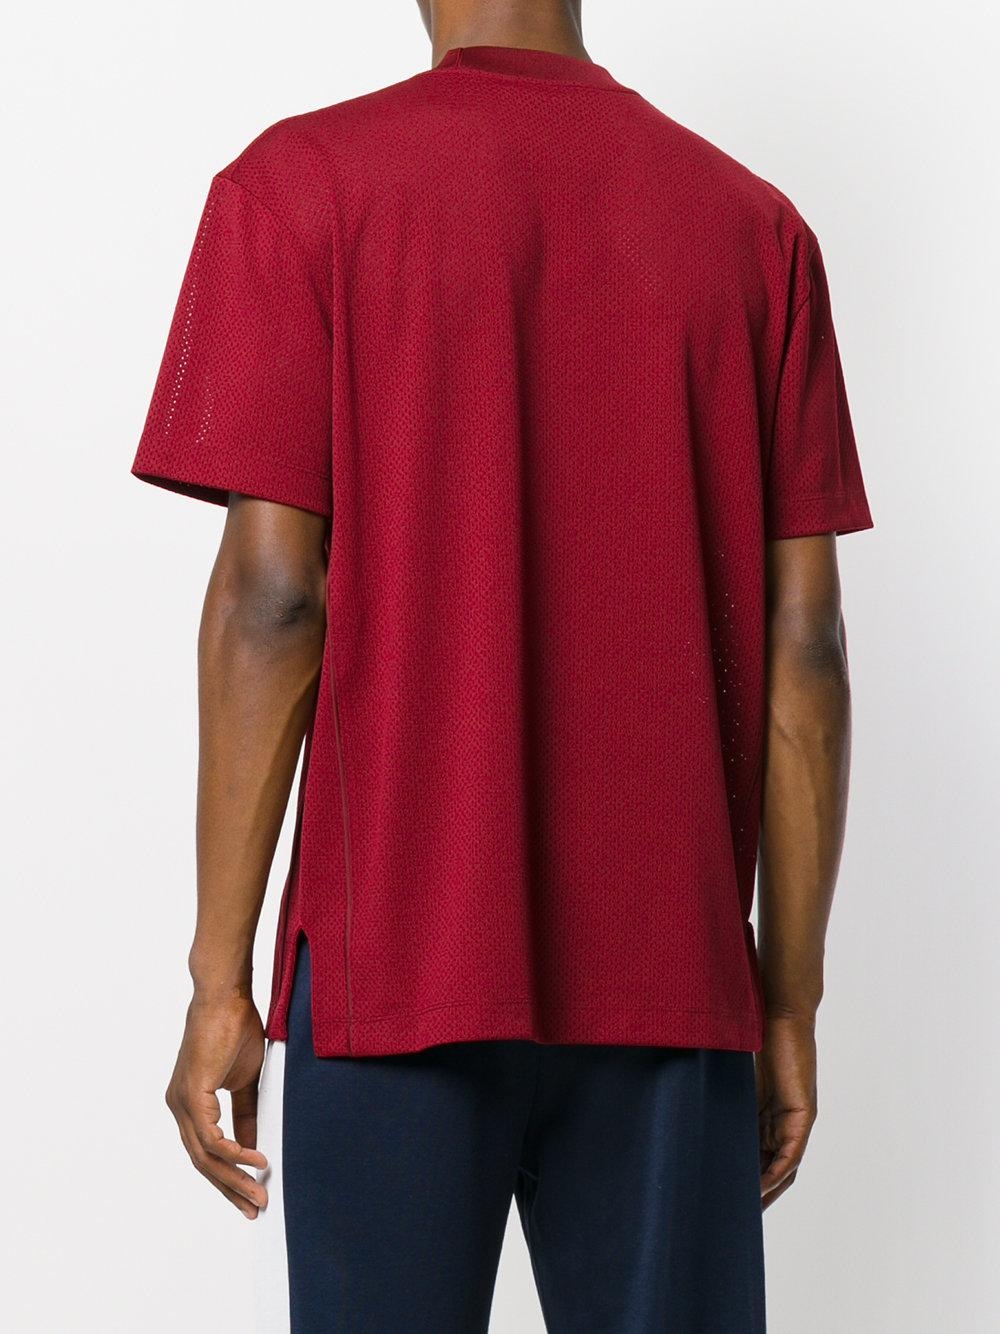 Vetements Printed Cotton T-shirt in Black - Lyst